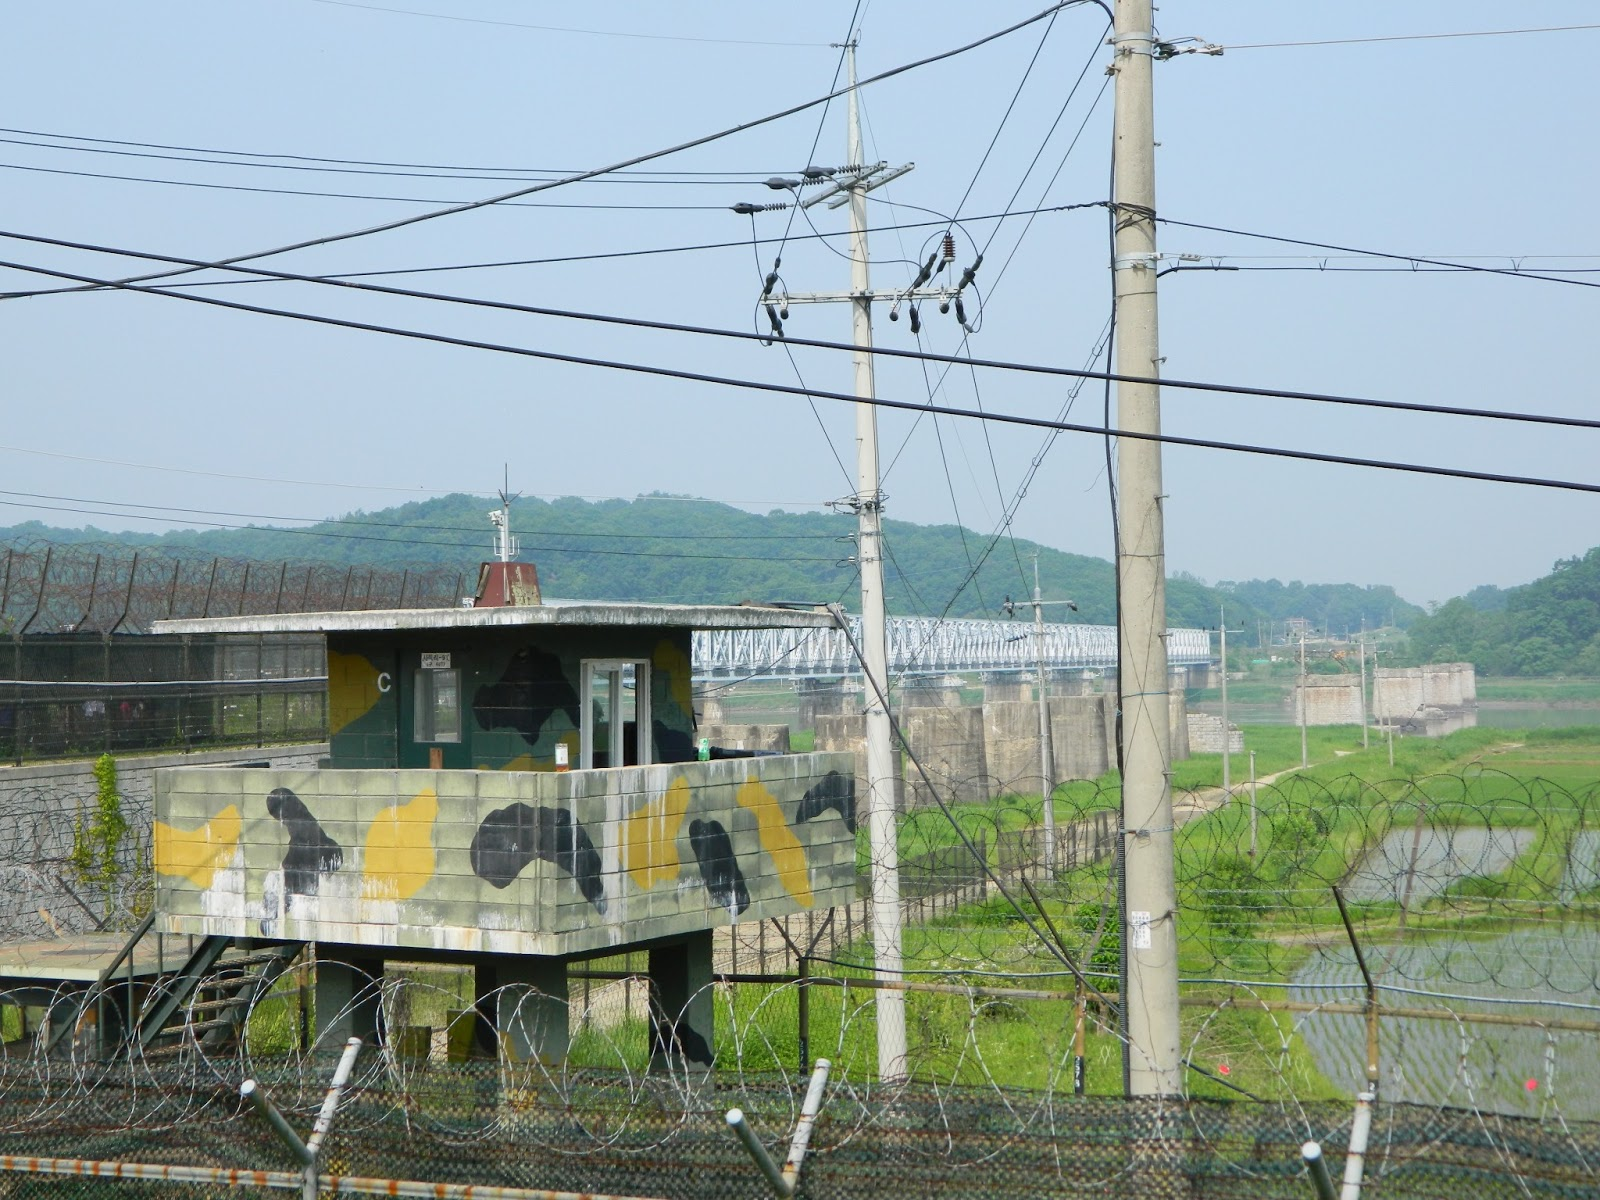 The 38th Parallel Dmz Koreabridge